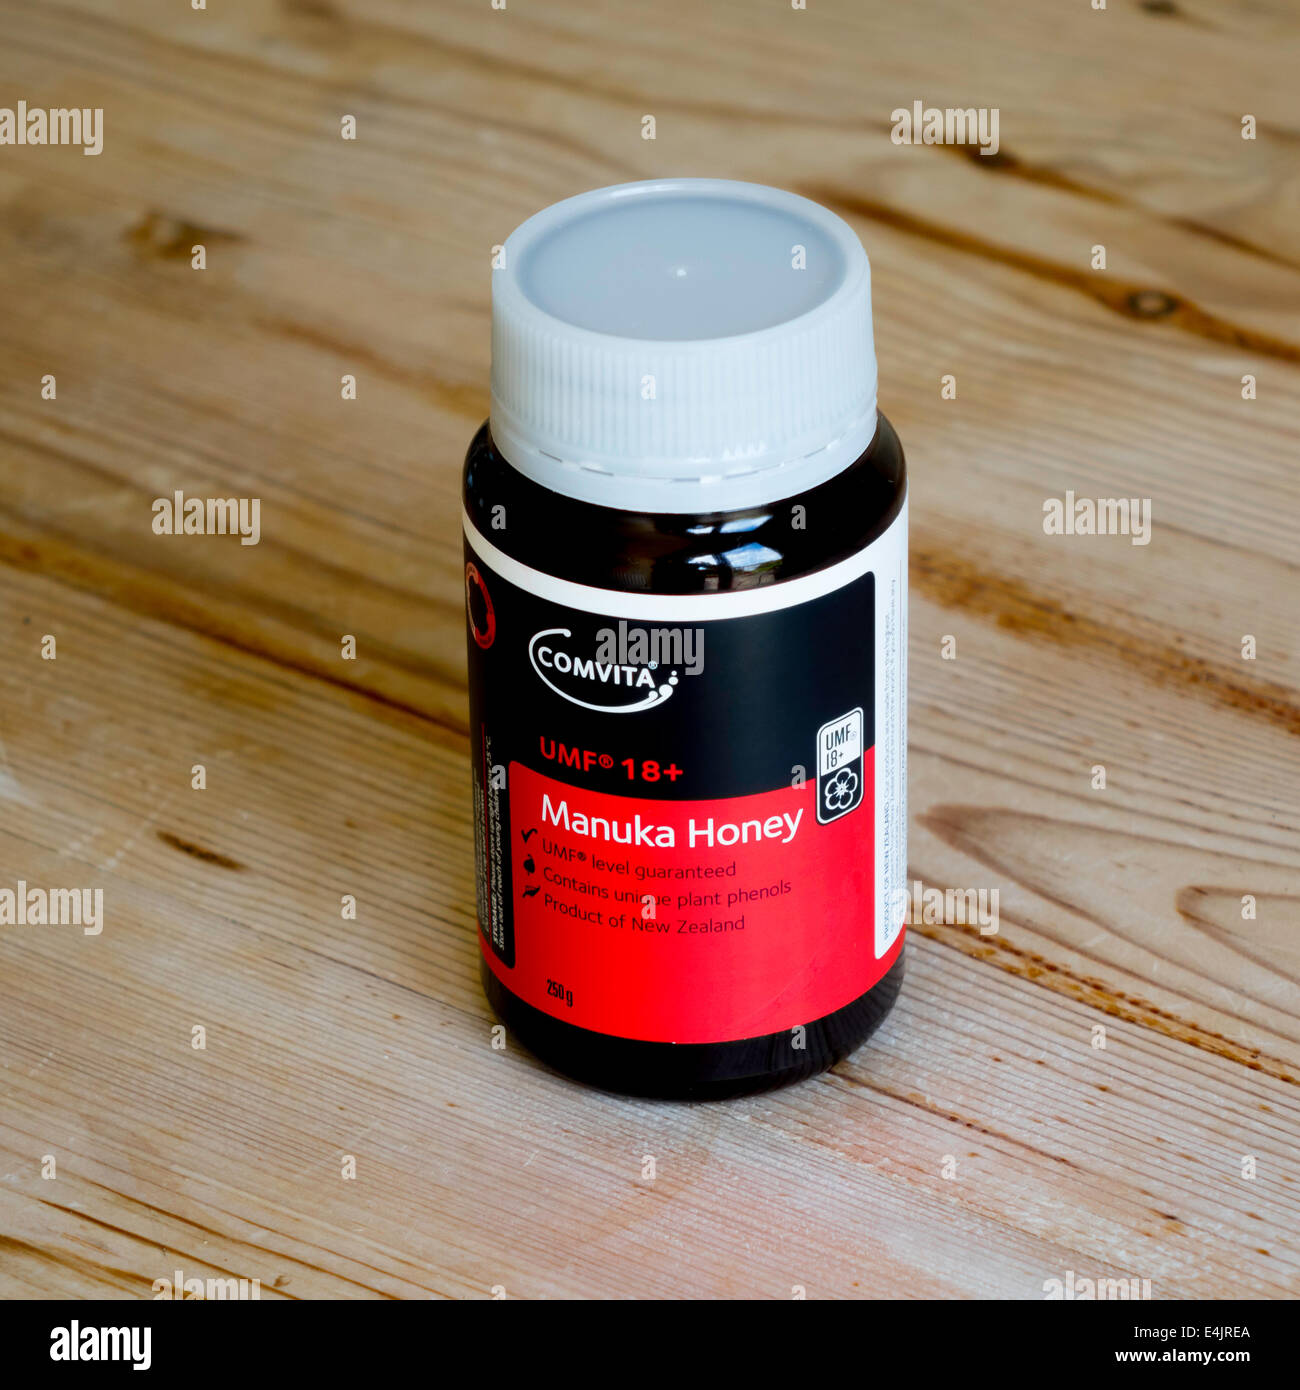 Jar of Manuka Honey expensive as it has medicinal properties and has limited production only New Zealand tea tree - Stock Image